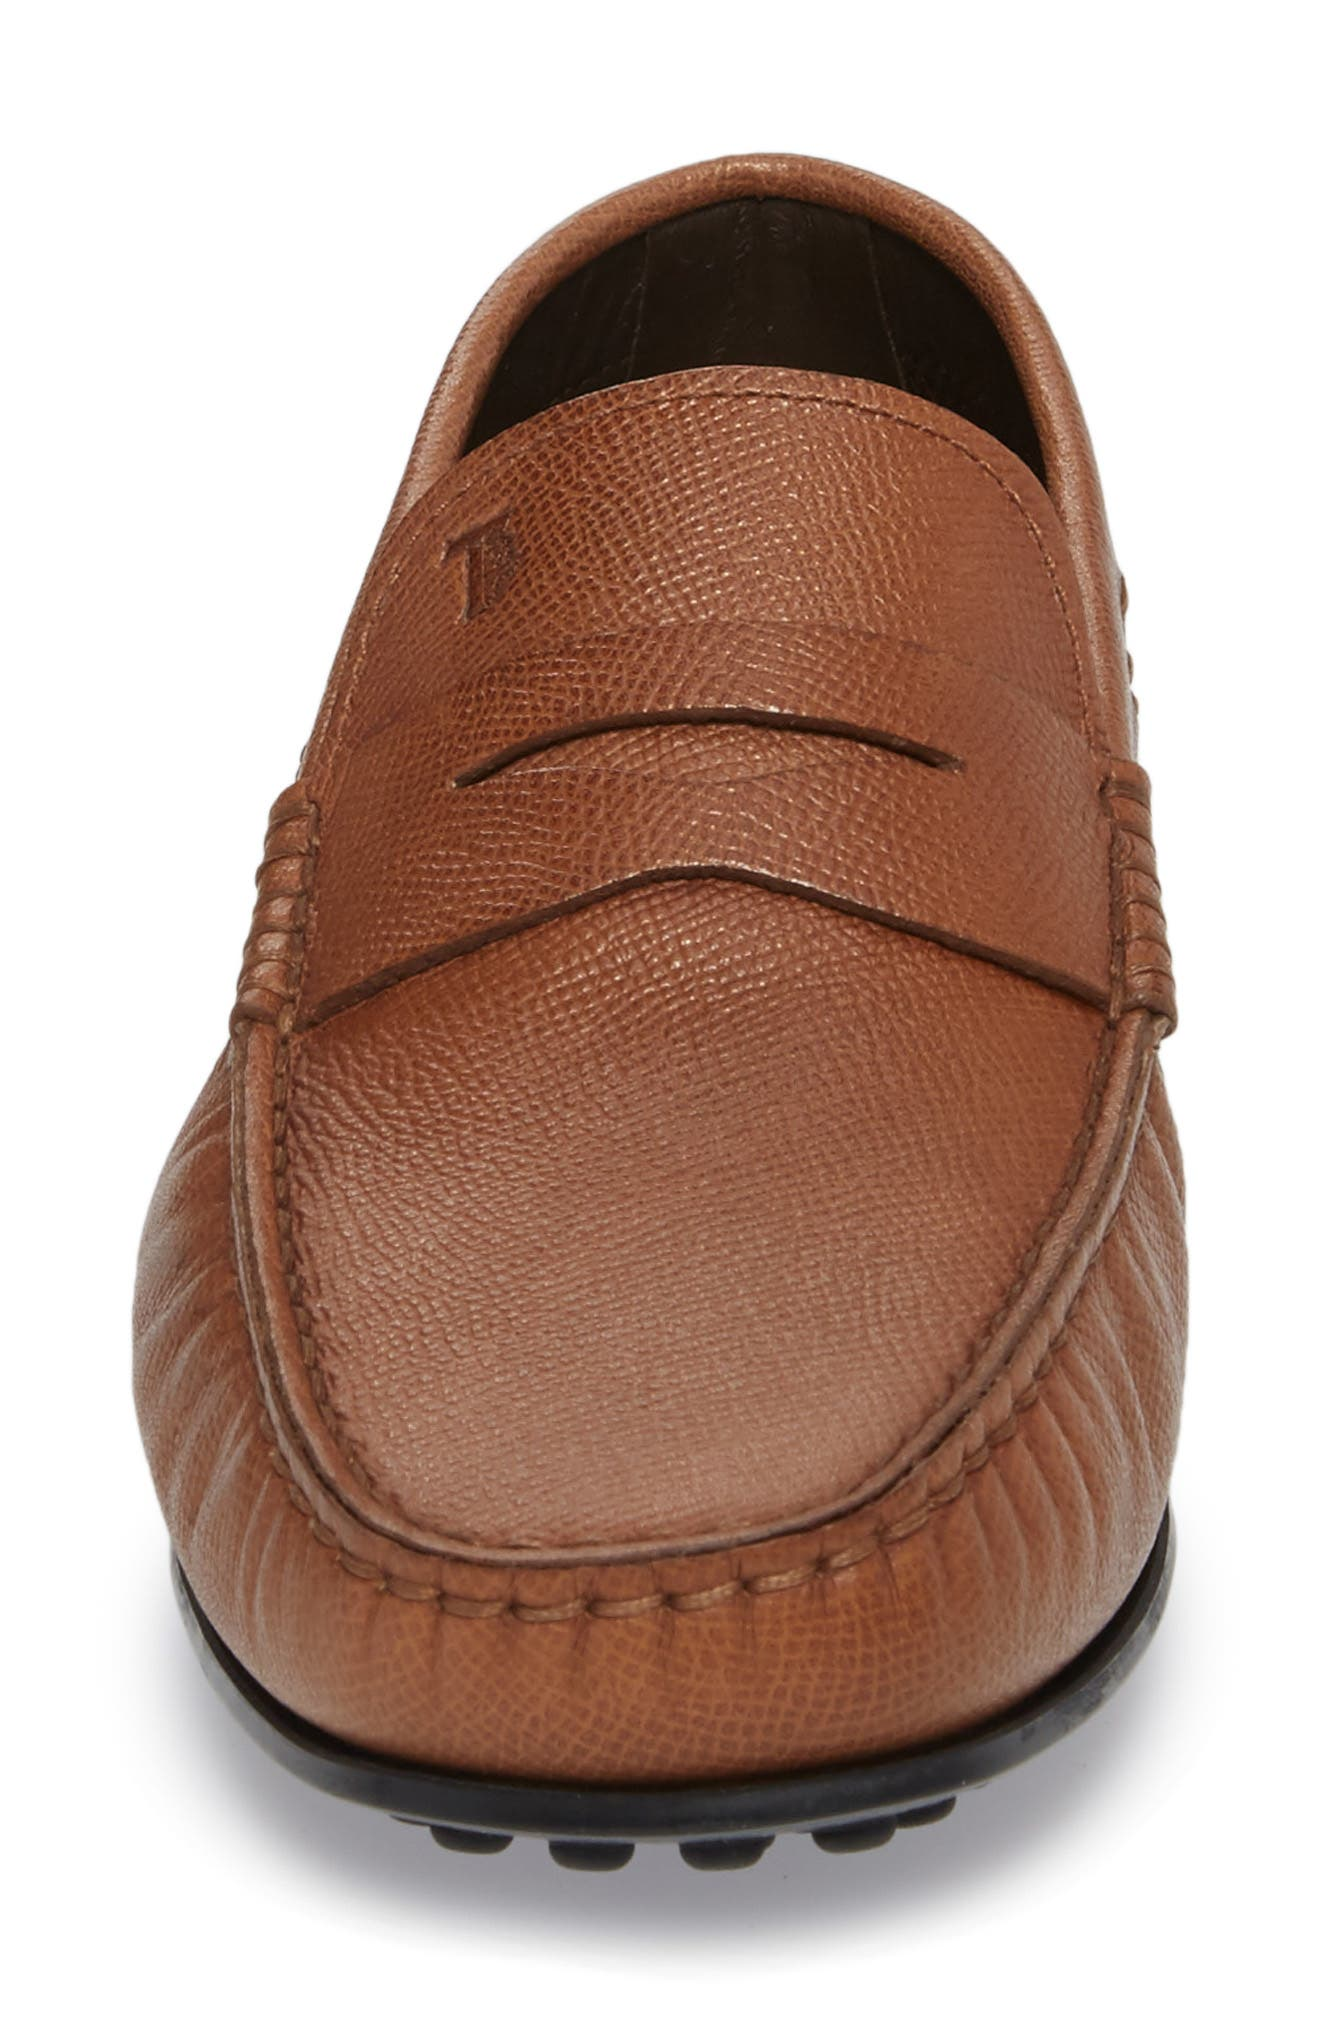 City Driving Shoe,                             Alternate thumbnail 4, color,                             TAN LEATHER